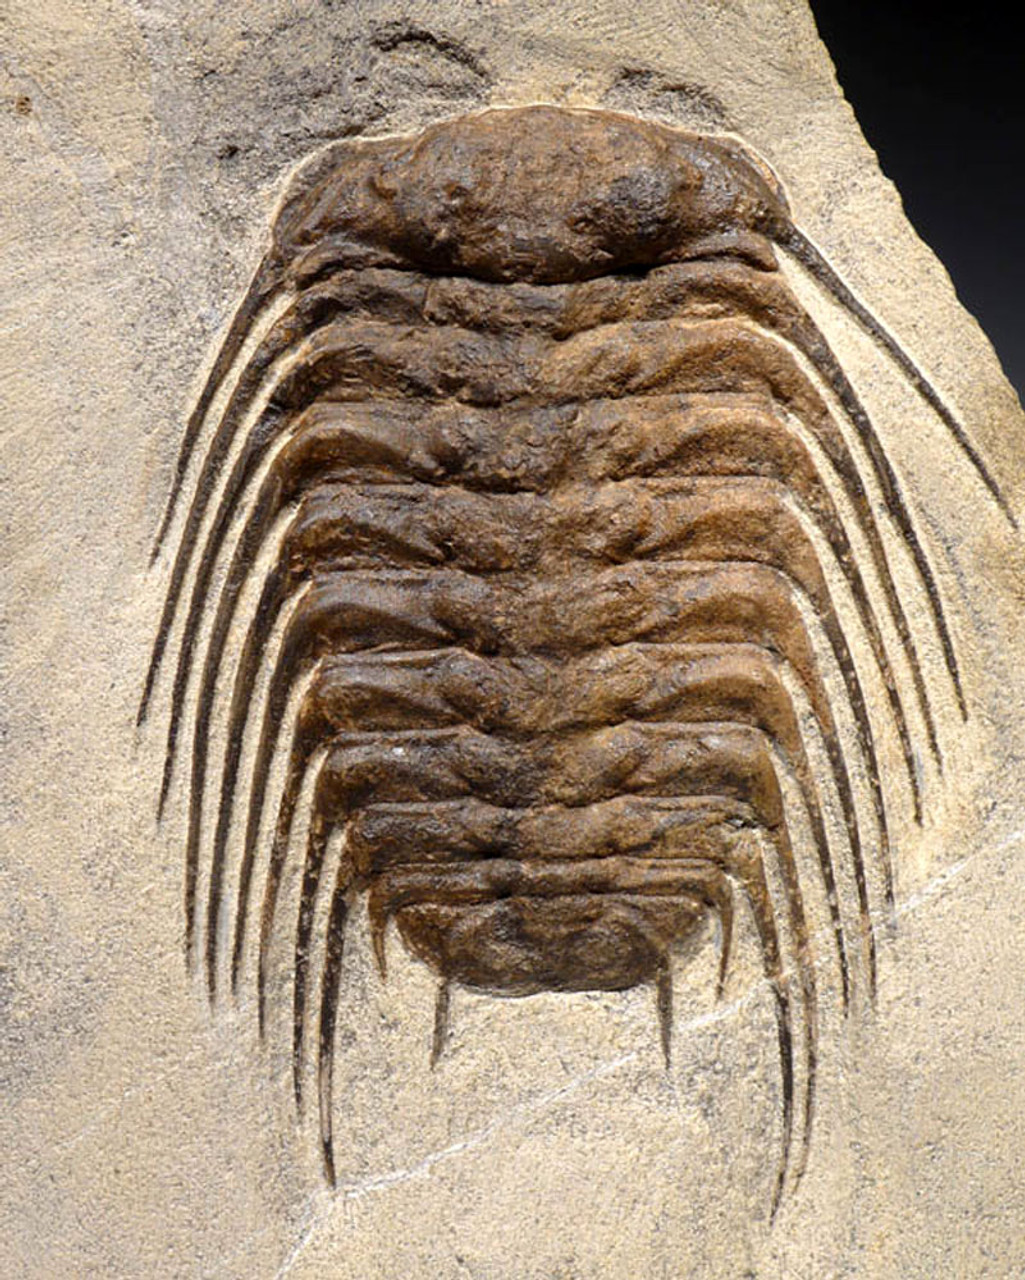 FINEST MAXIMUM SIZE SPINY SELENOPELTIS TRILOBITE FROM THE ORDOVICIAN PERIOD *TRX273